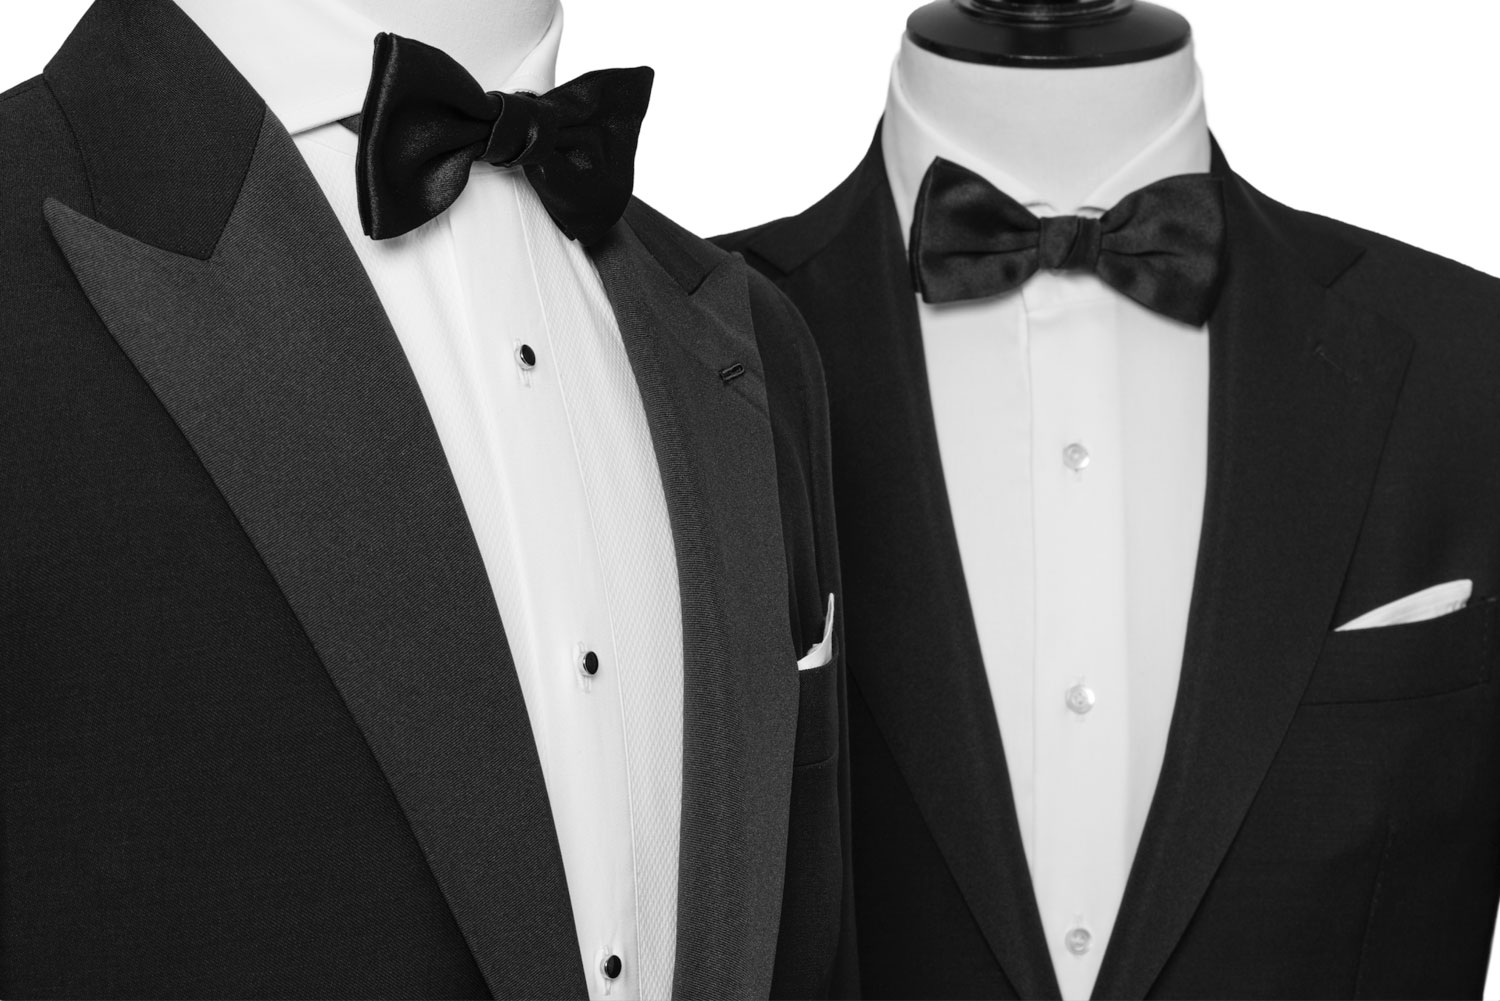 formalwear - A corner stone in every gentleman's wardrobe. We offer a variety of executions on the tuxedo, the dinner jacket and all of the appropriate accessories, including custom shoes. Our offerings cover everything from the most classic to the less conventional, assuring to cover all of your formal needs. Tuxedo pricing starts at $1,200 with all options included. Please allow 4-6 weeks for delivery.